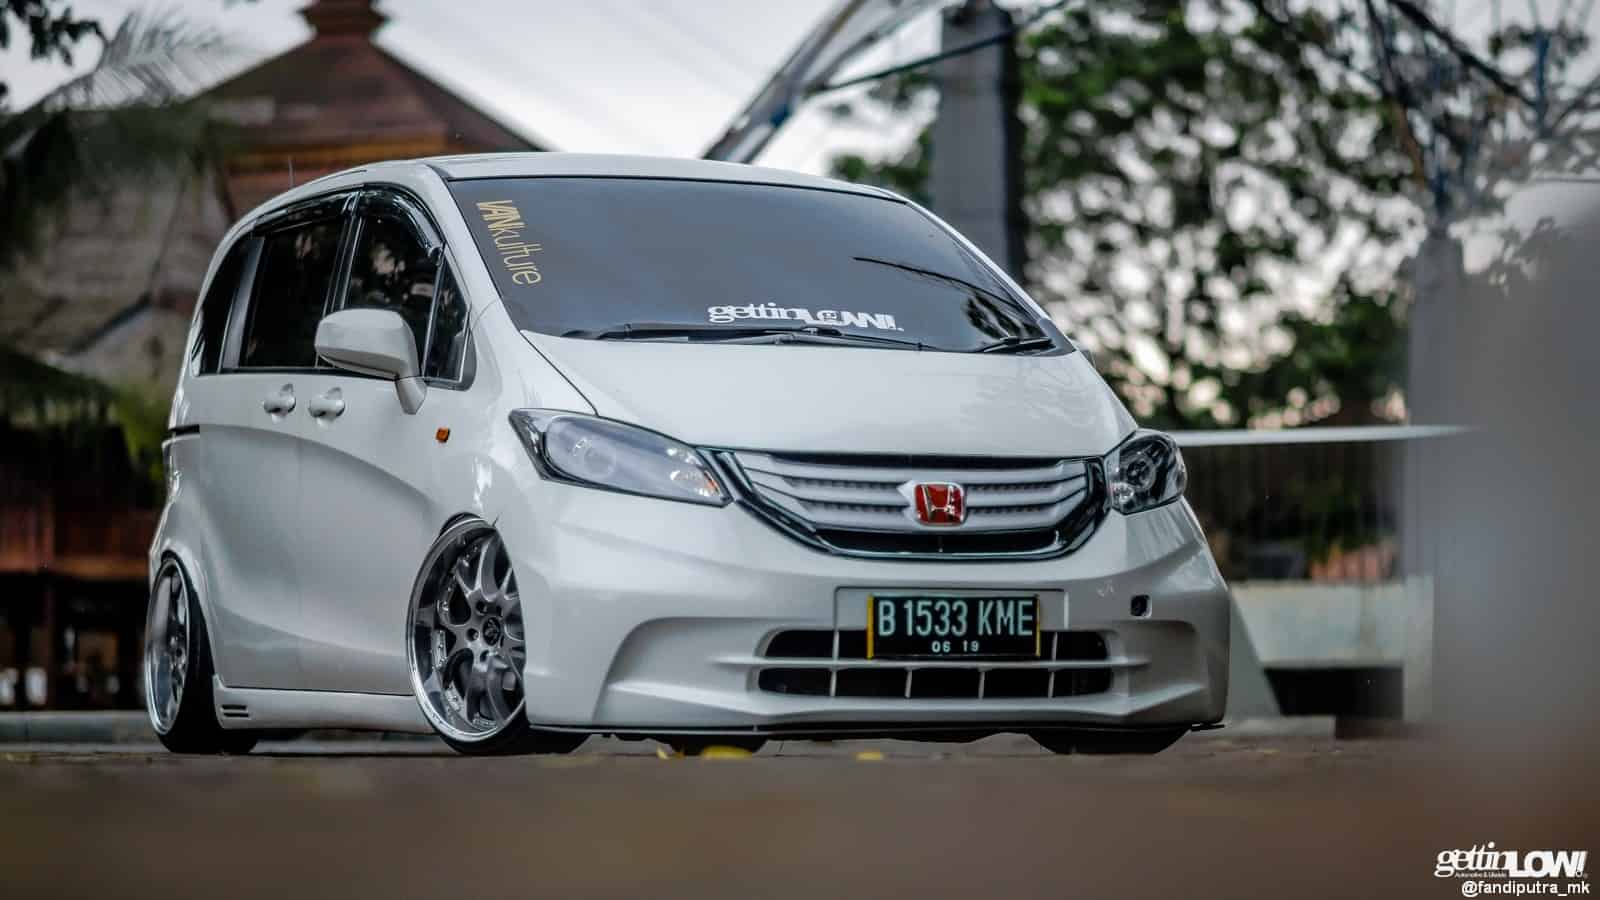 Modifikasi Stance Honda Freed milik Bani ABD